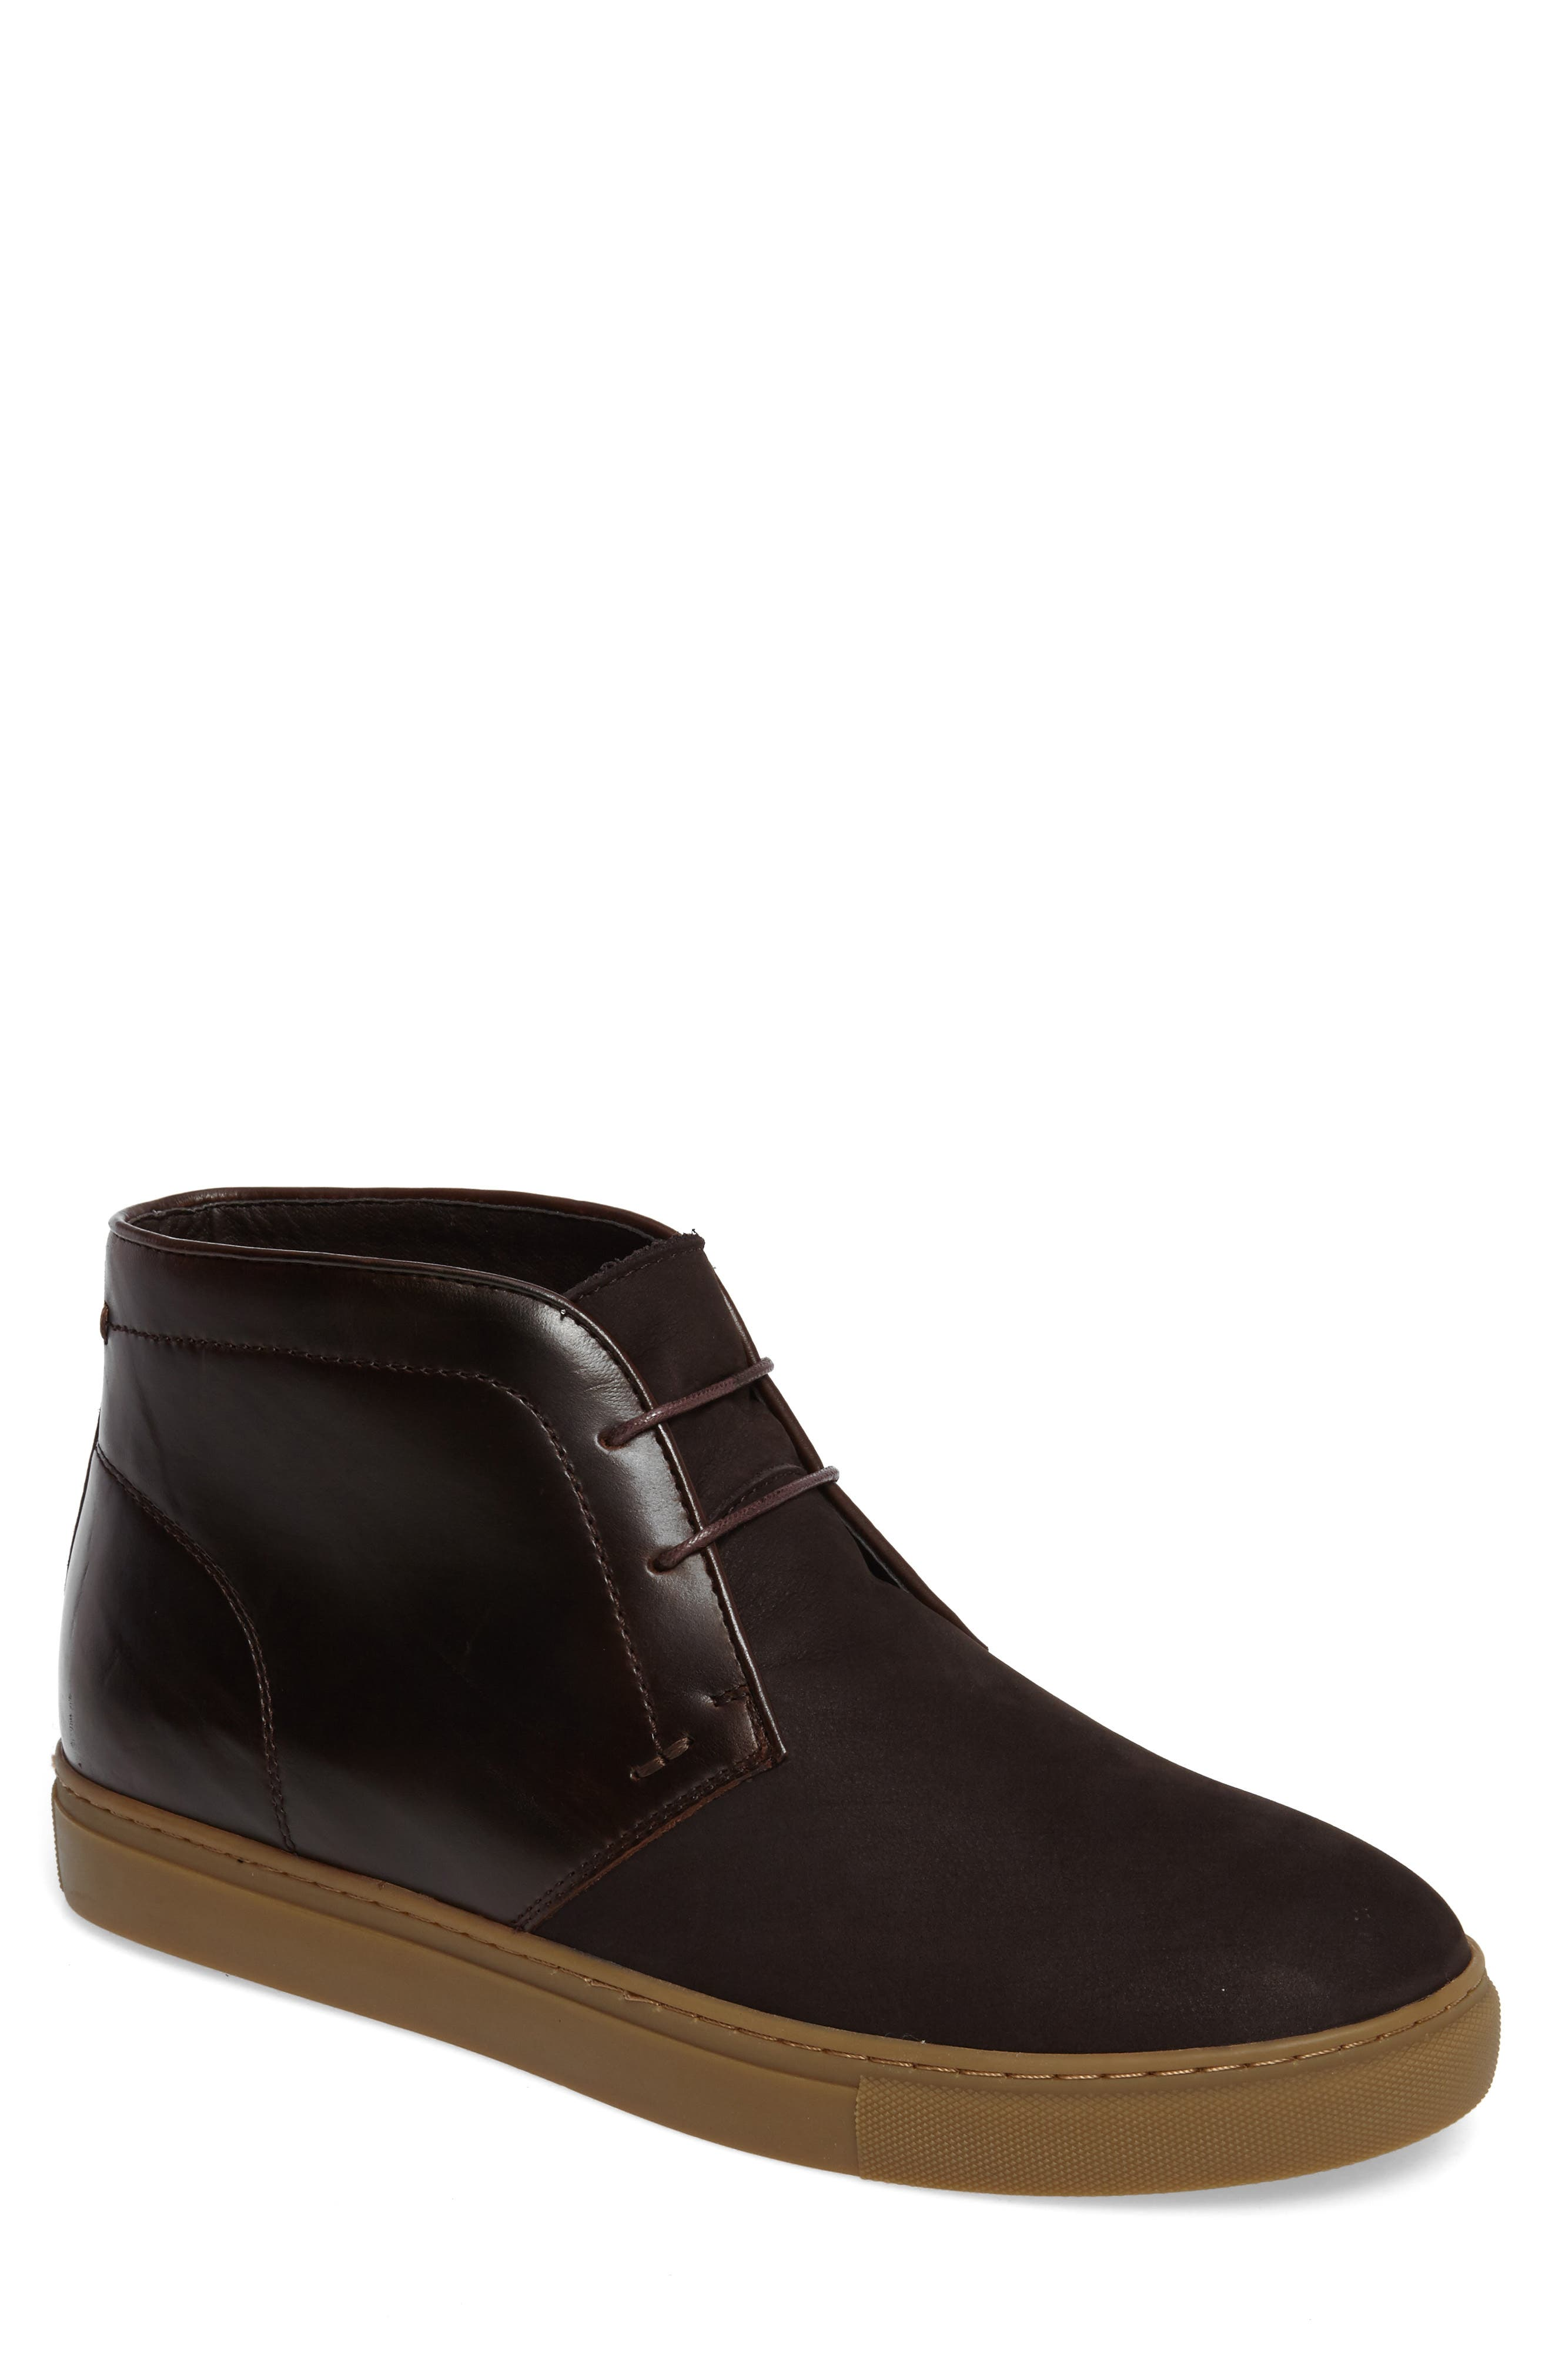 Laxey Mid Sneaker,                             Main thumbnail 2, color,